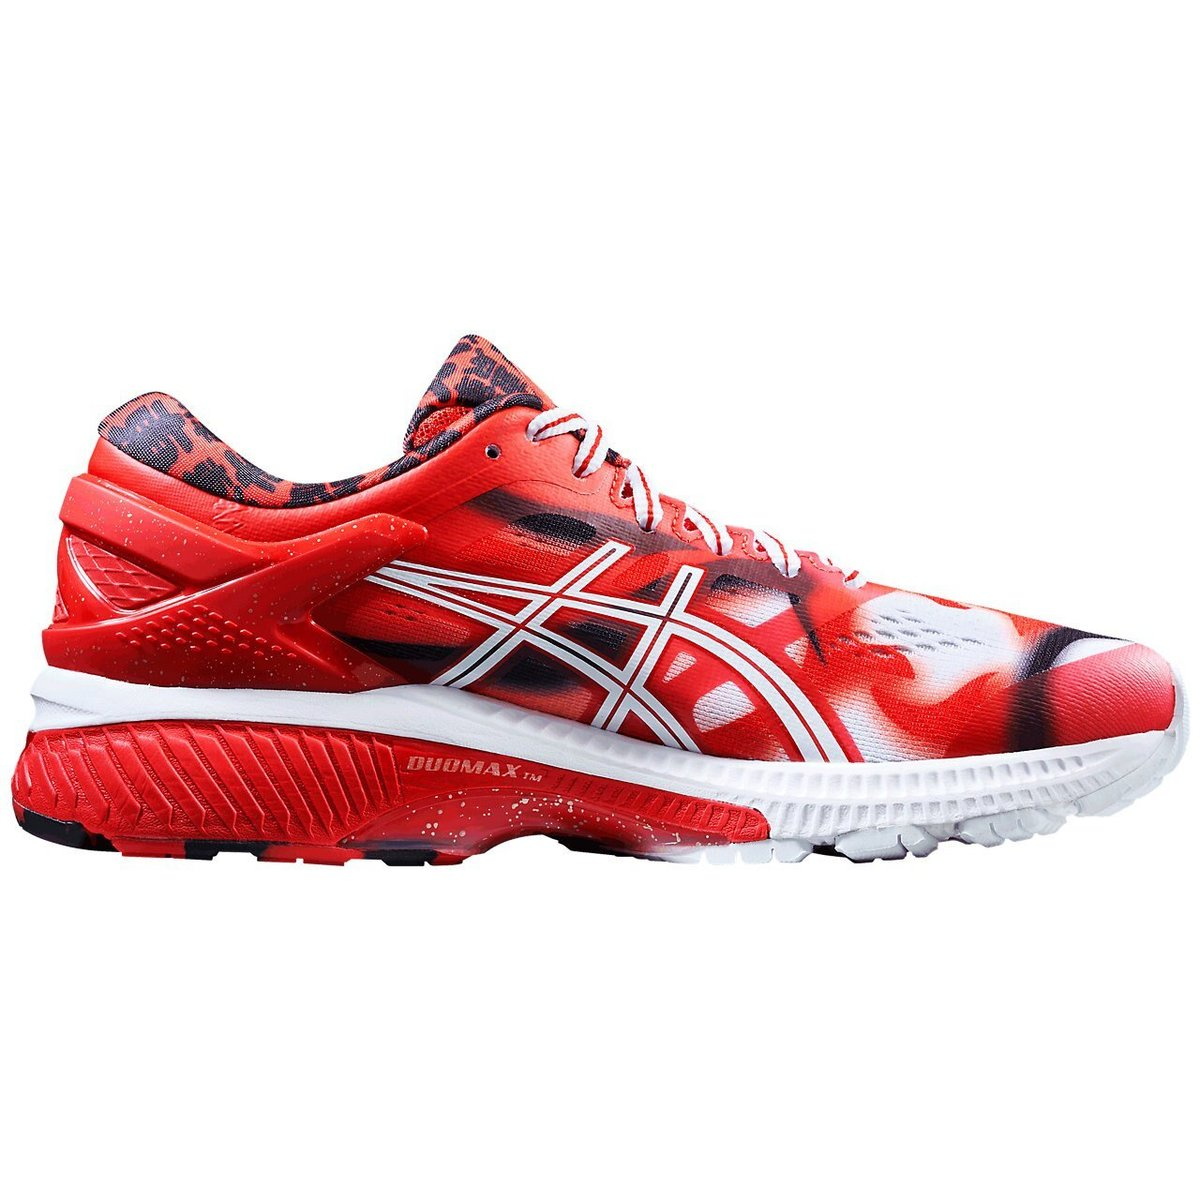 asics size 5.5 Cheaper Than Retail Price> Buy Clothing ...